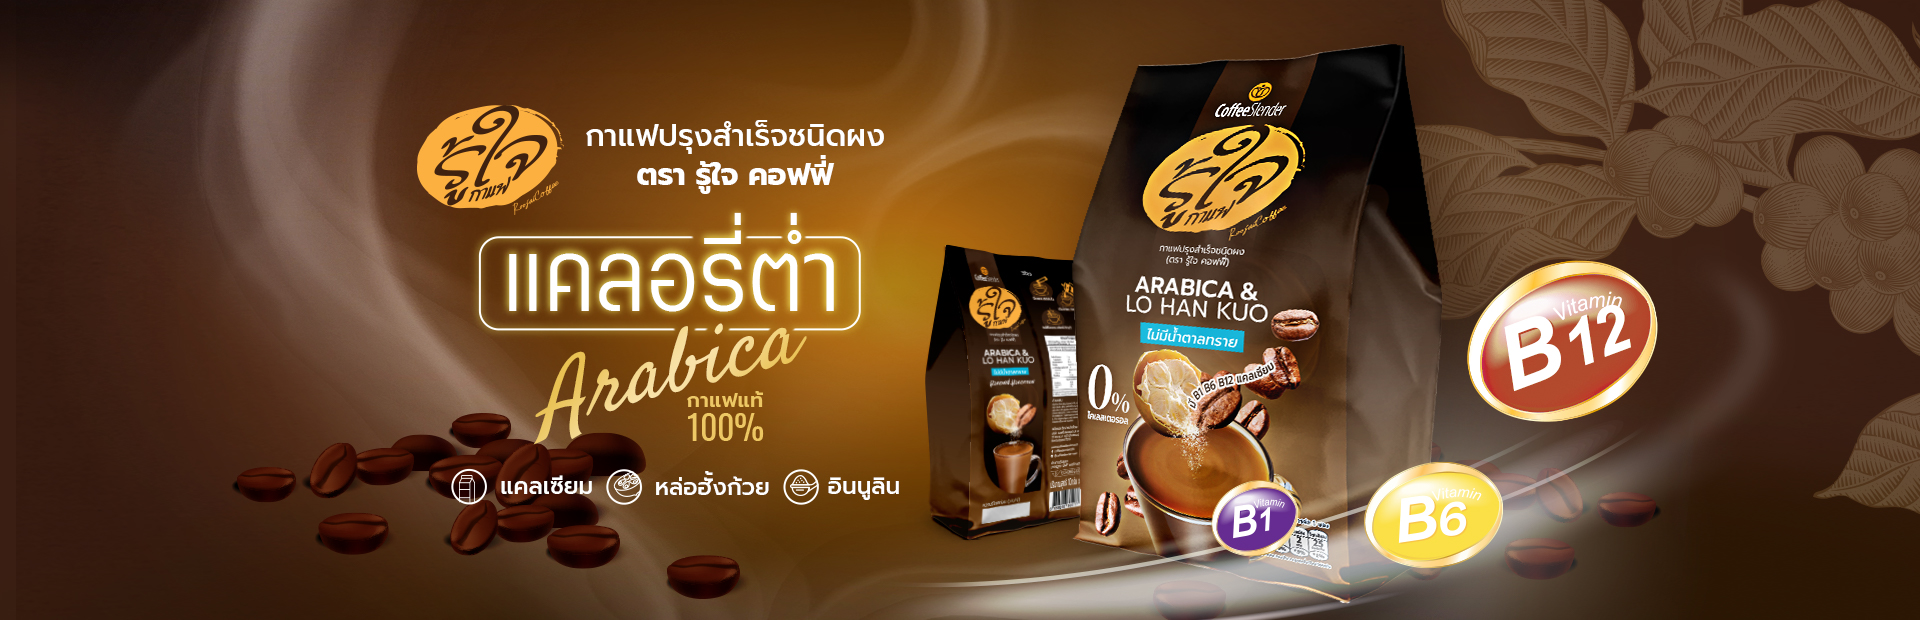 [RJcoffee]_Post_Web_Cover_1920x620